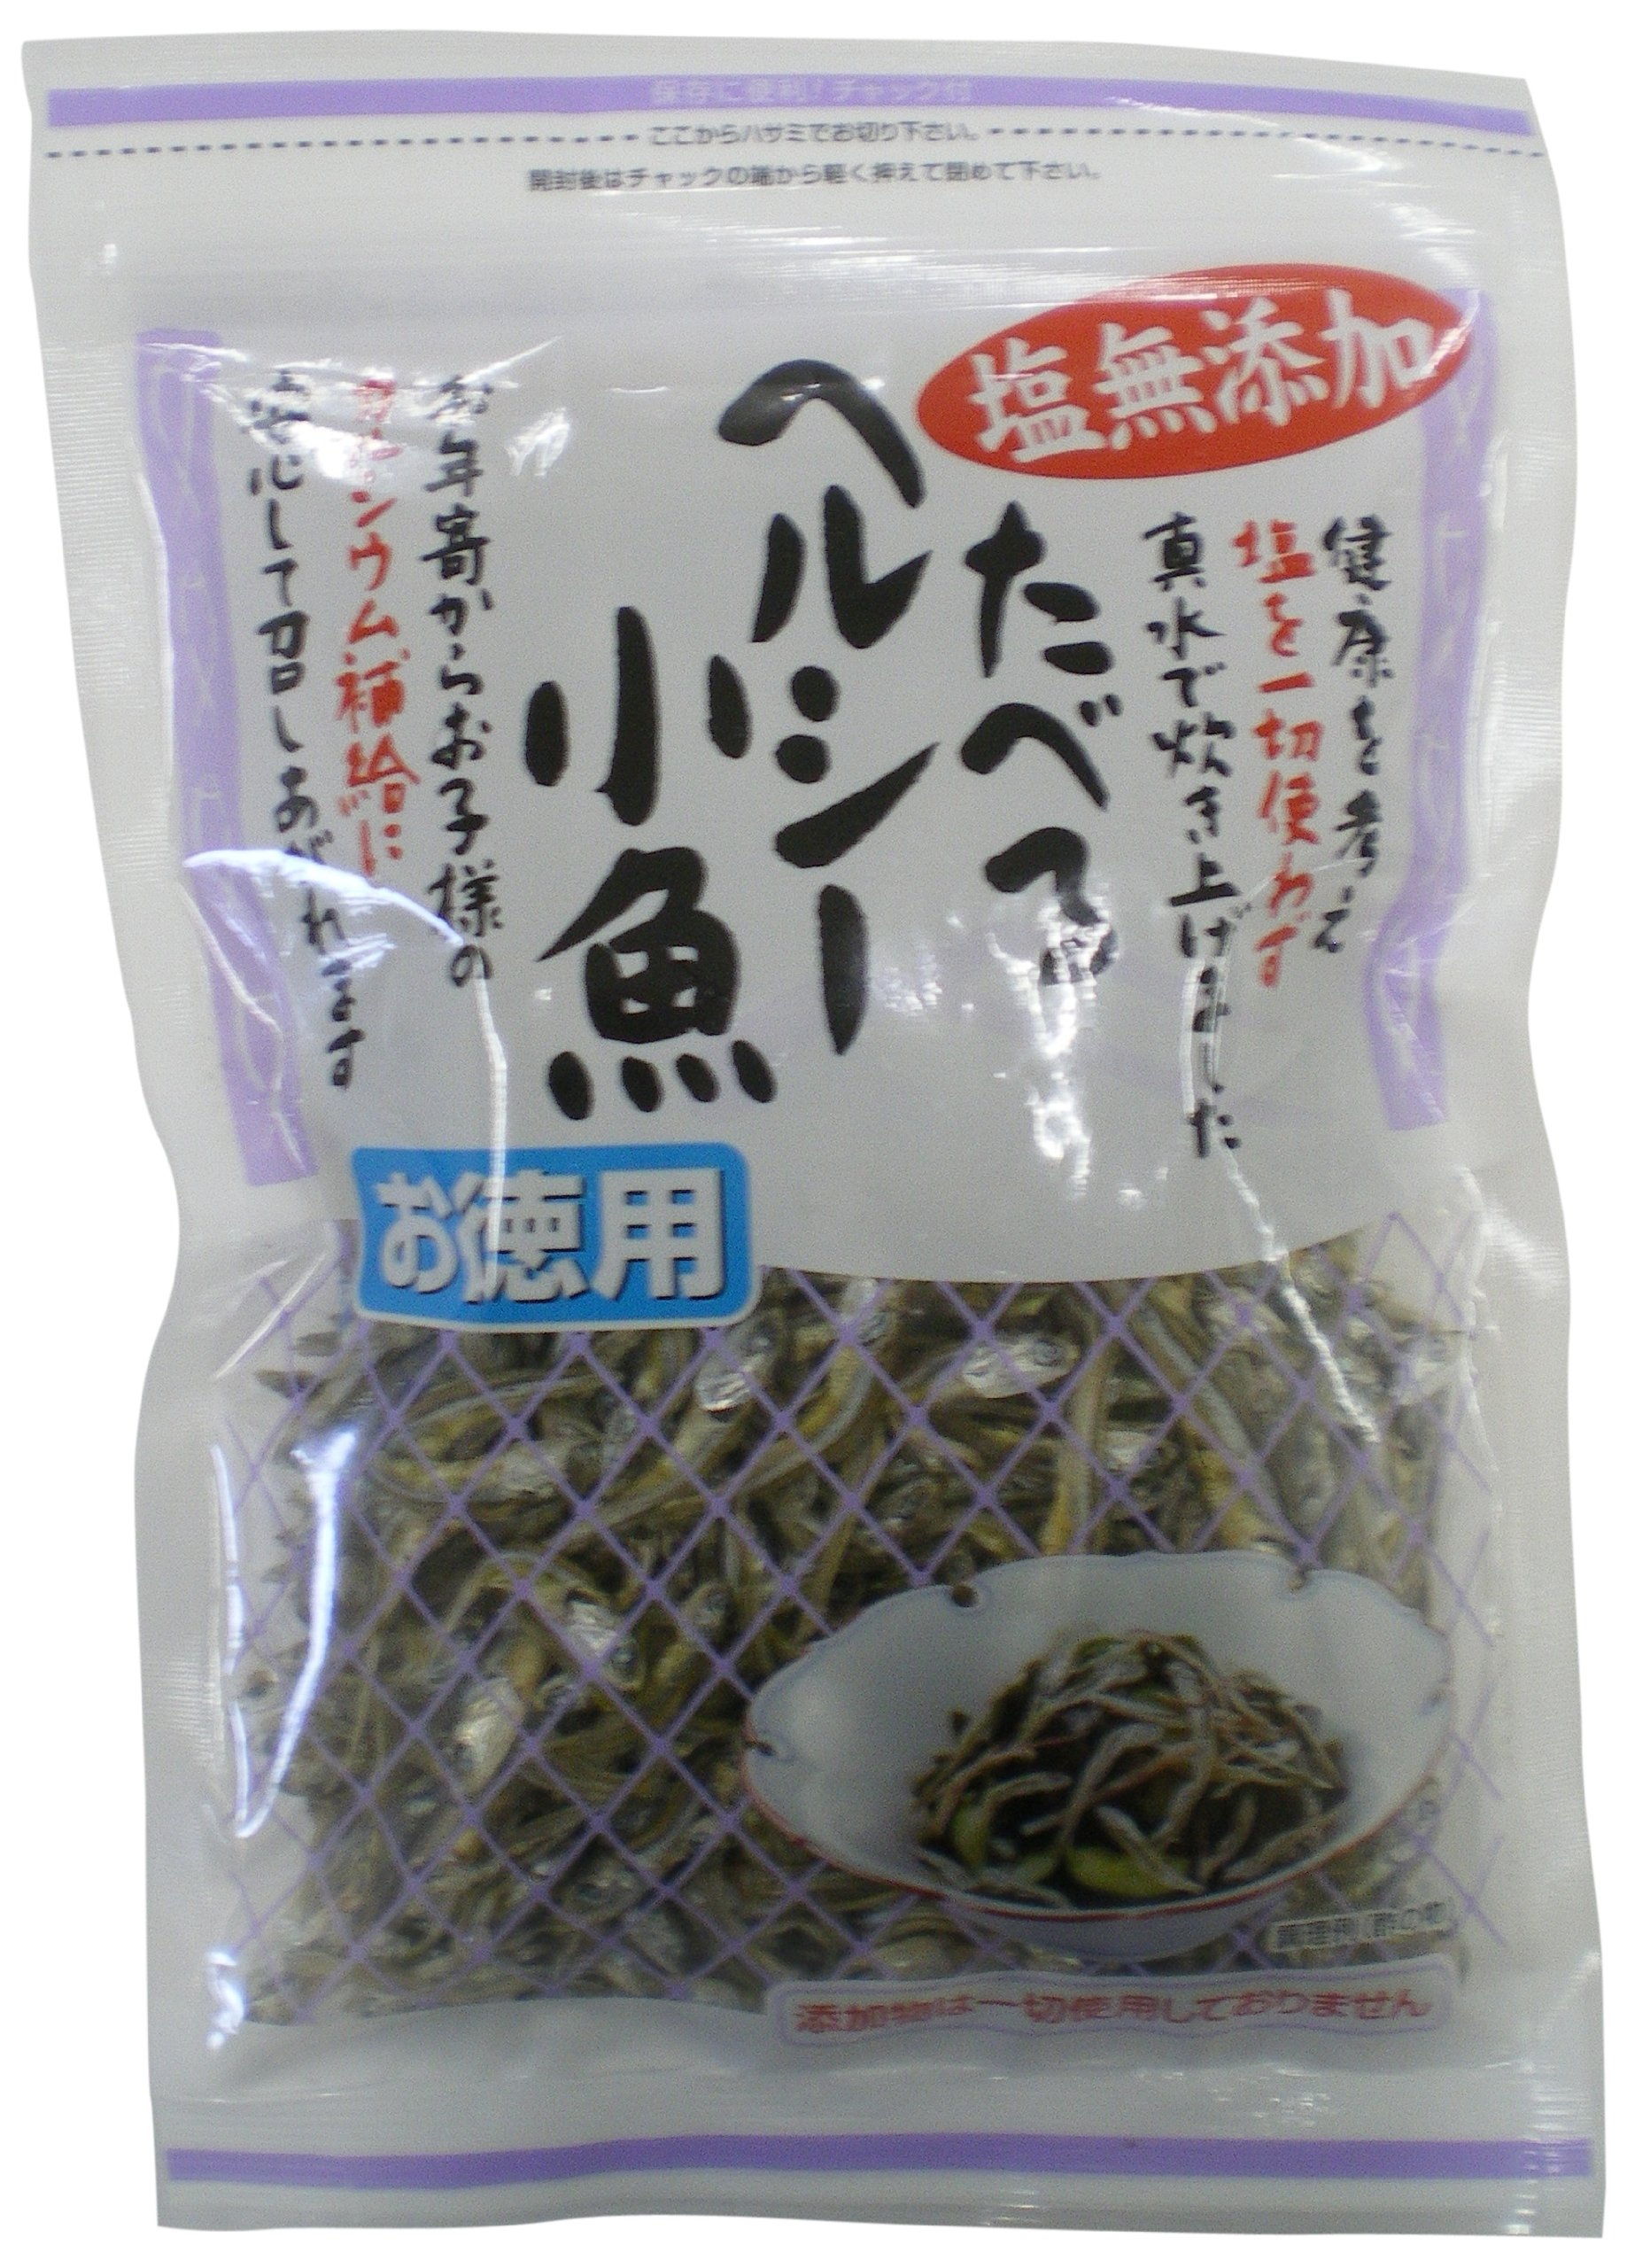 Tosa-ya economical to eat healthy small fish 80gX10 by Tosaya